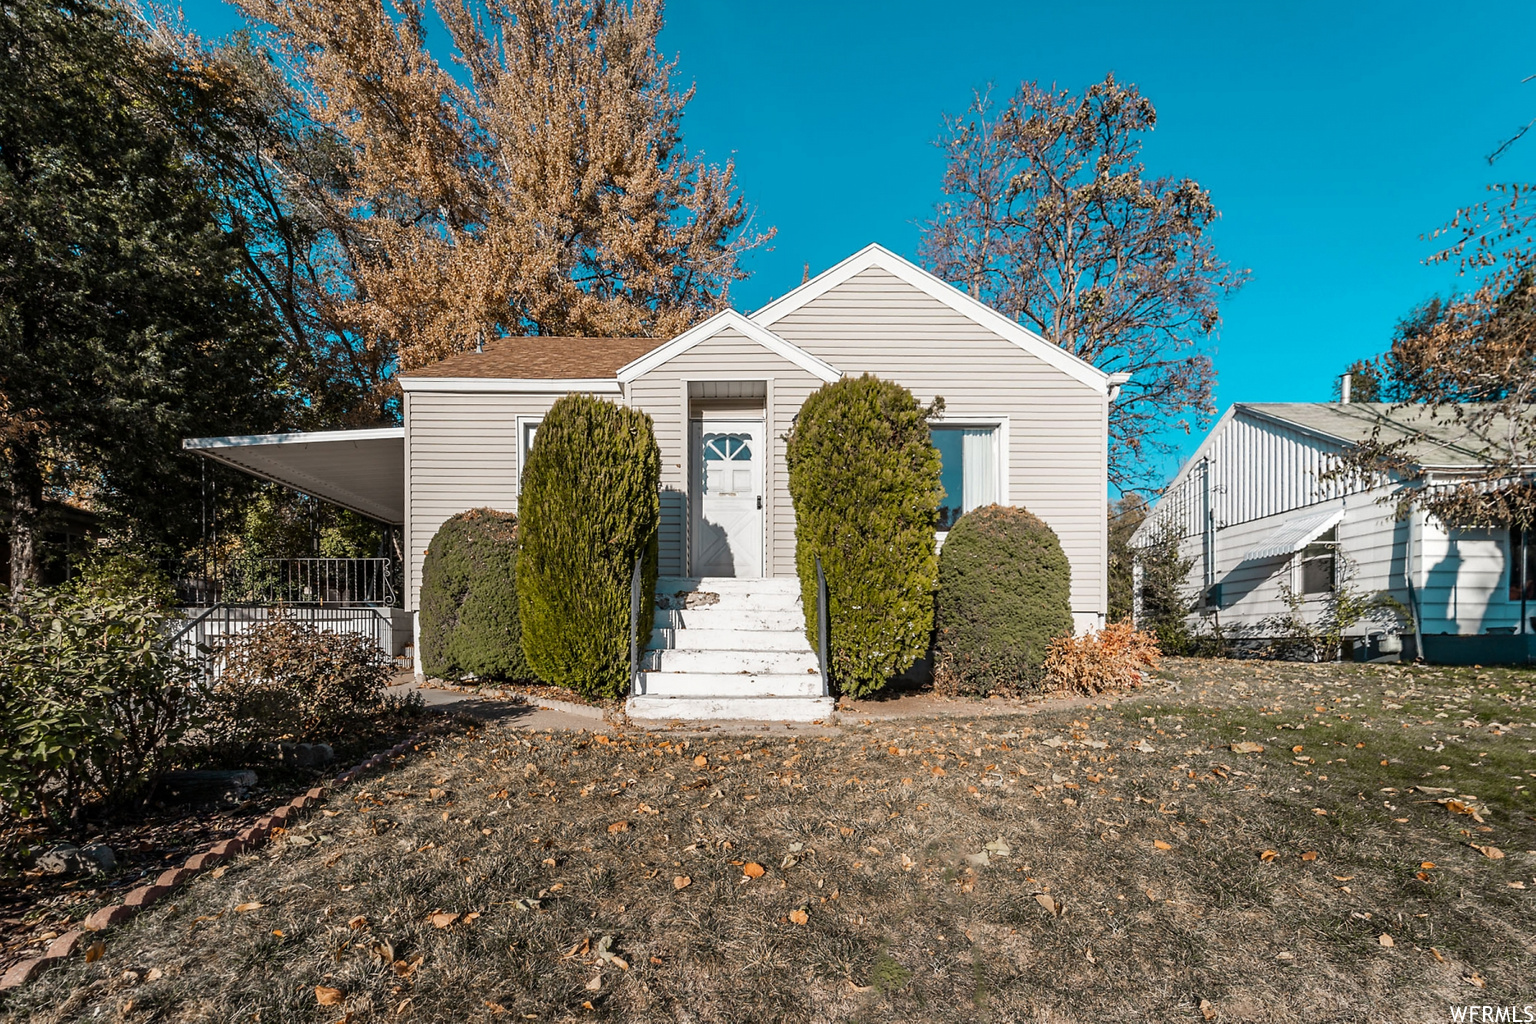 184 40TH ST, South Ogden UT 84405